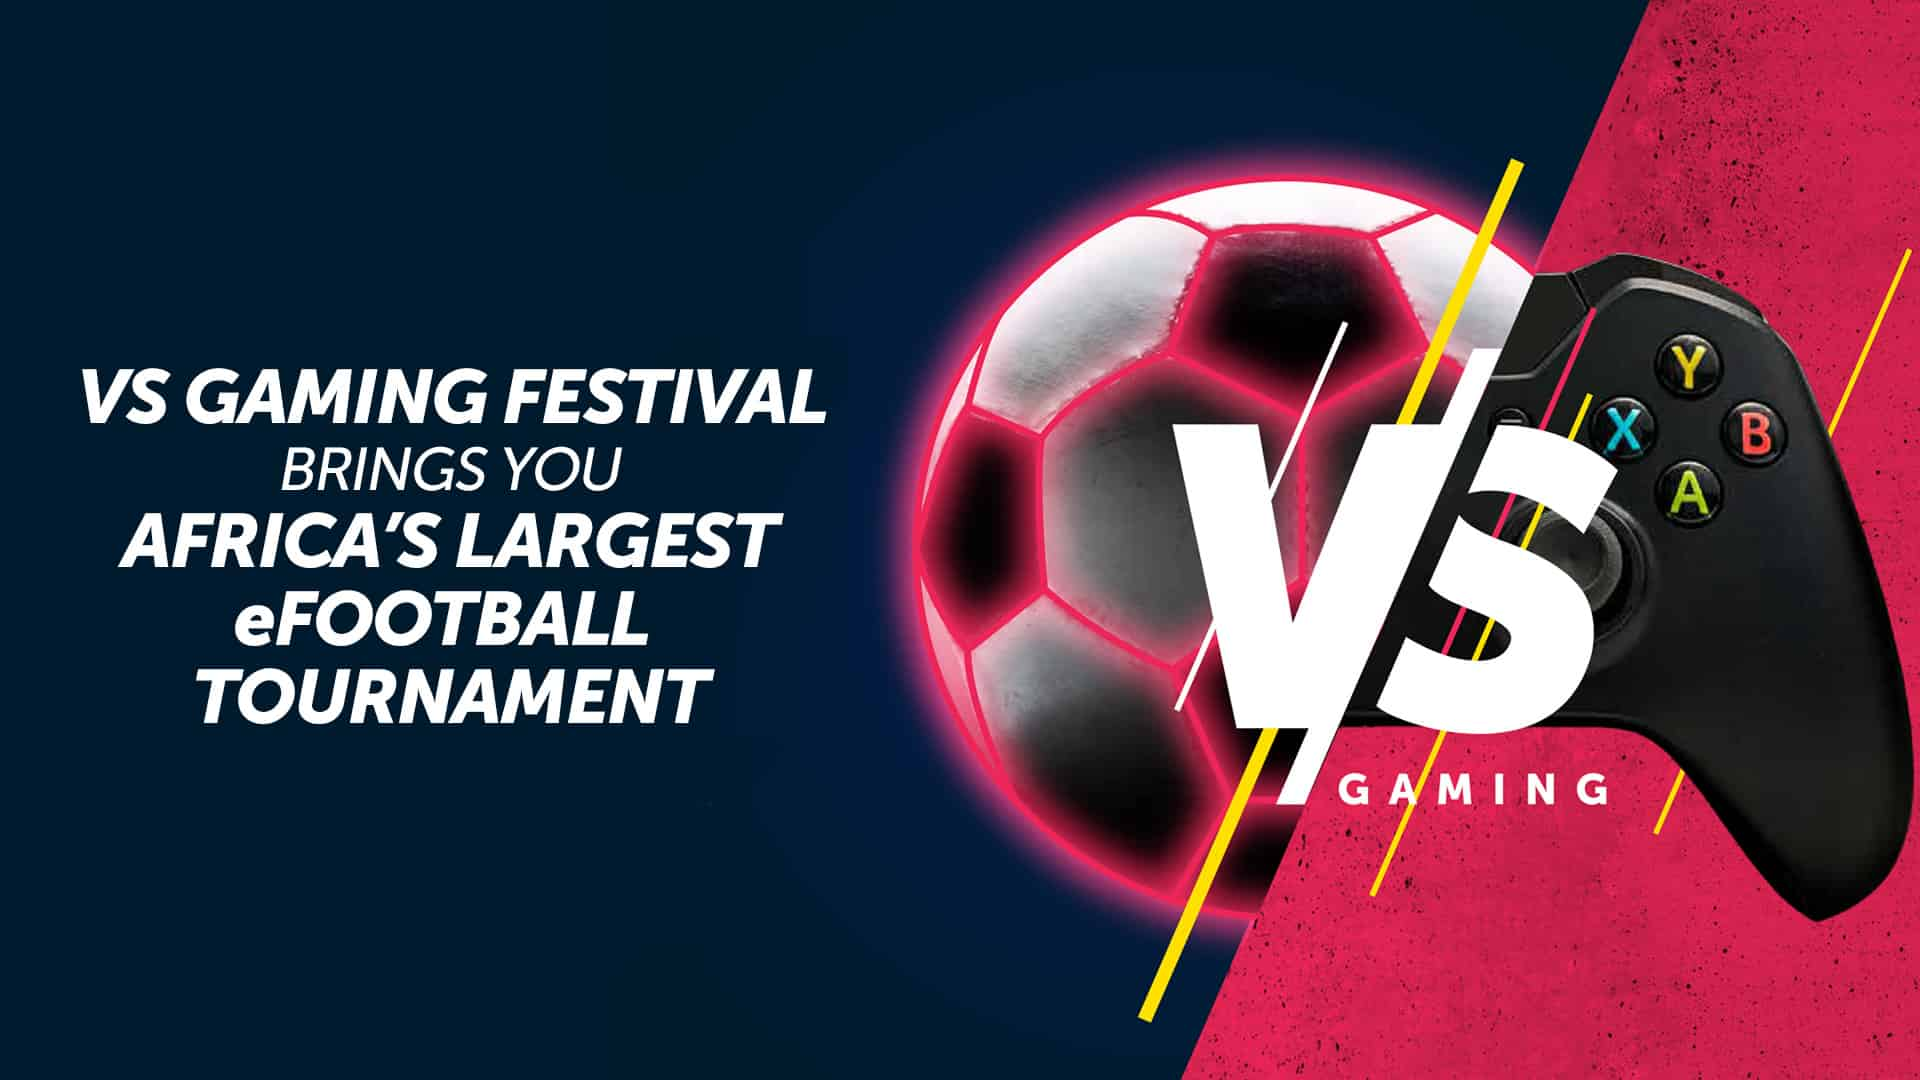 VS Gaming FIFA eWorld Cup Festival 2018